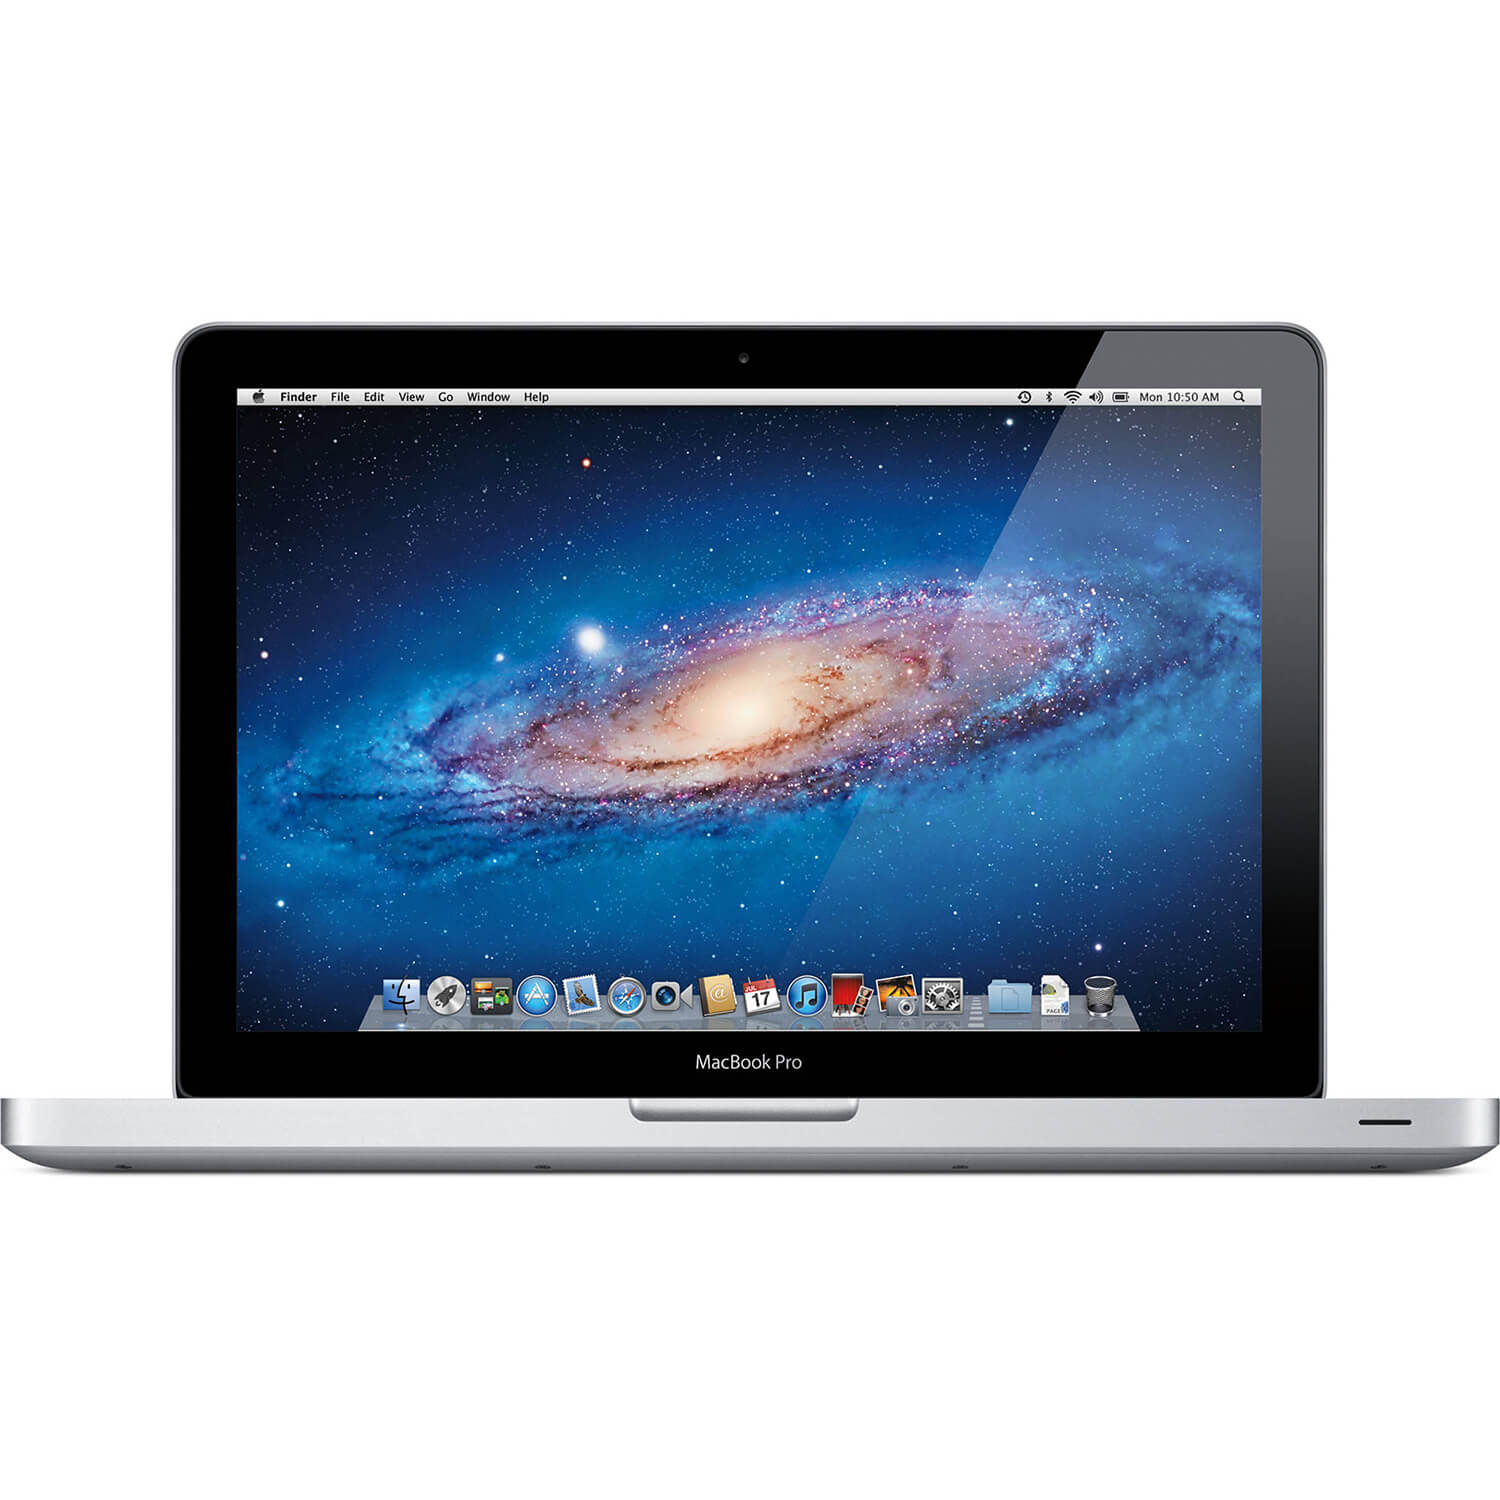 "Refurbished Apple MacBook Pro 13.3"" Laptop Intel i7 Dual Core 2.8GHz 4GB 750GB - MD314LL/A"